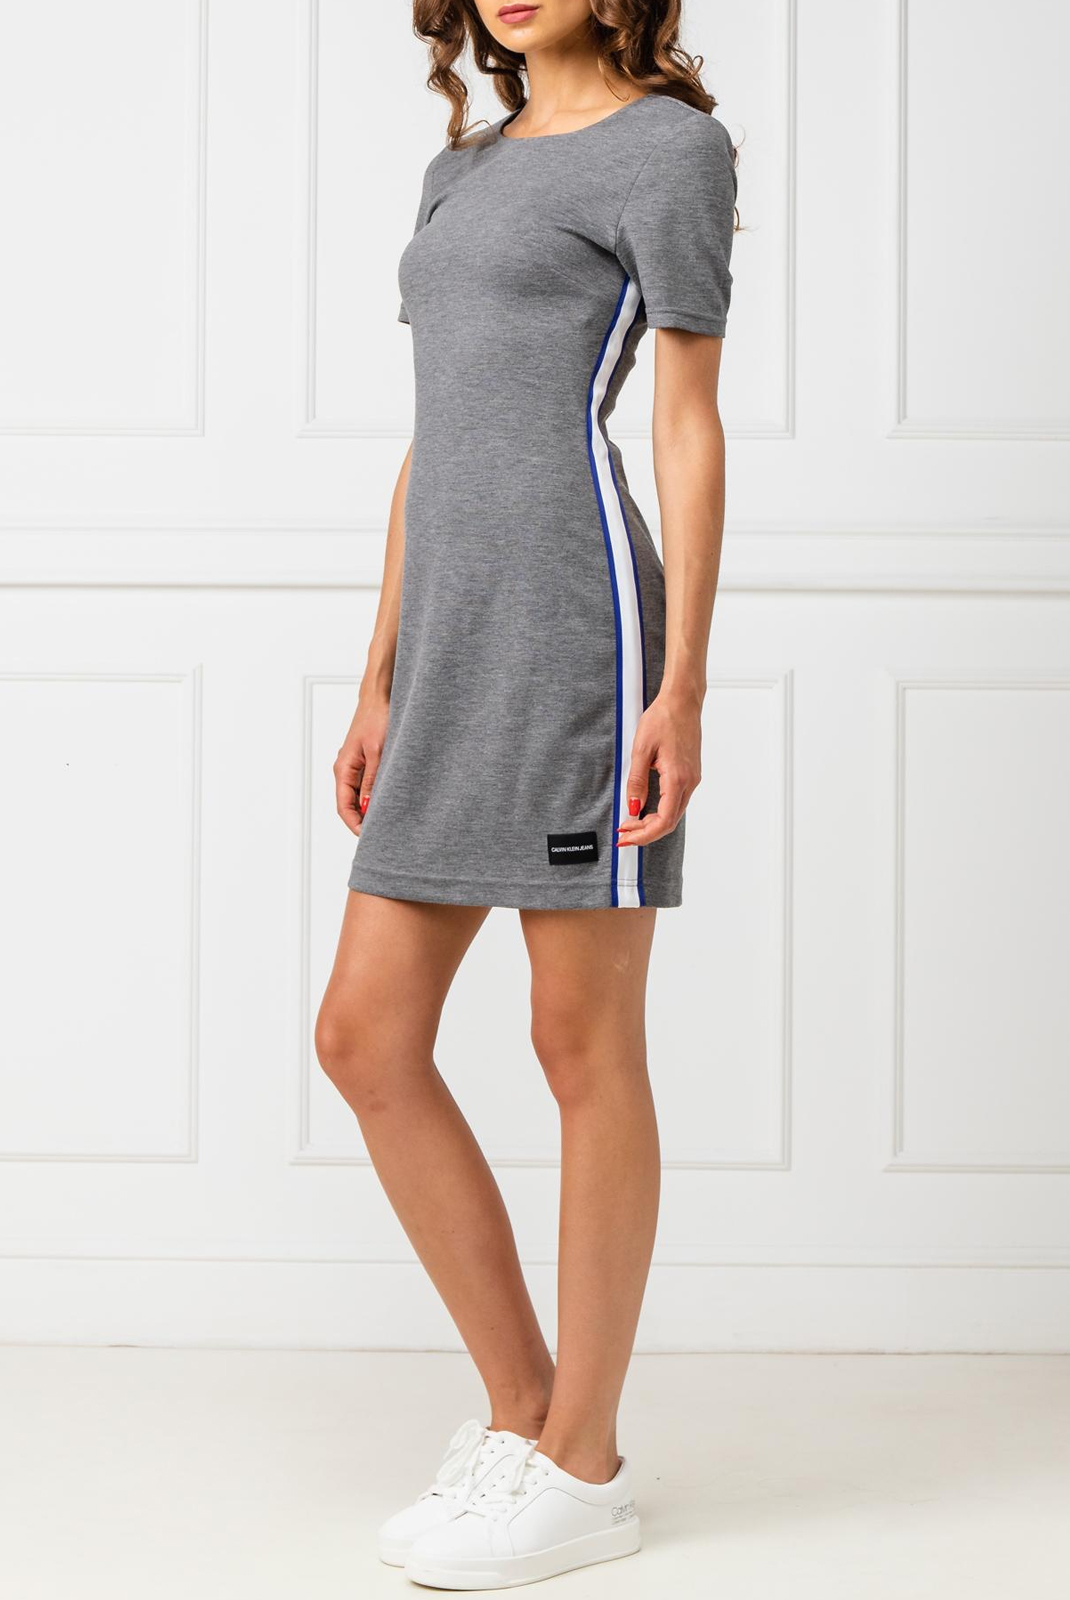 Robes  Calvin klein J20J212131-025 Mid Grey Heather